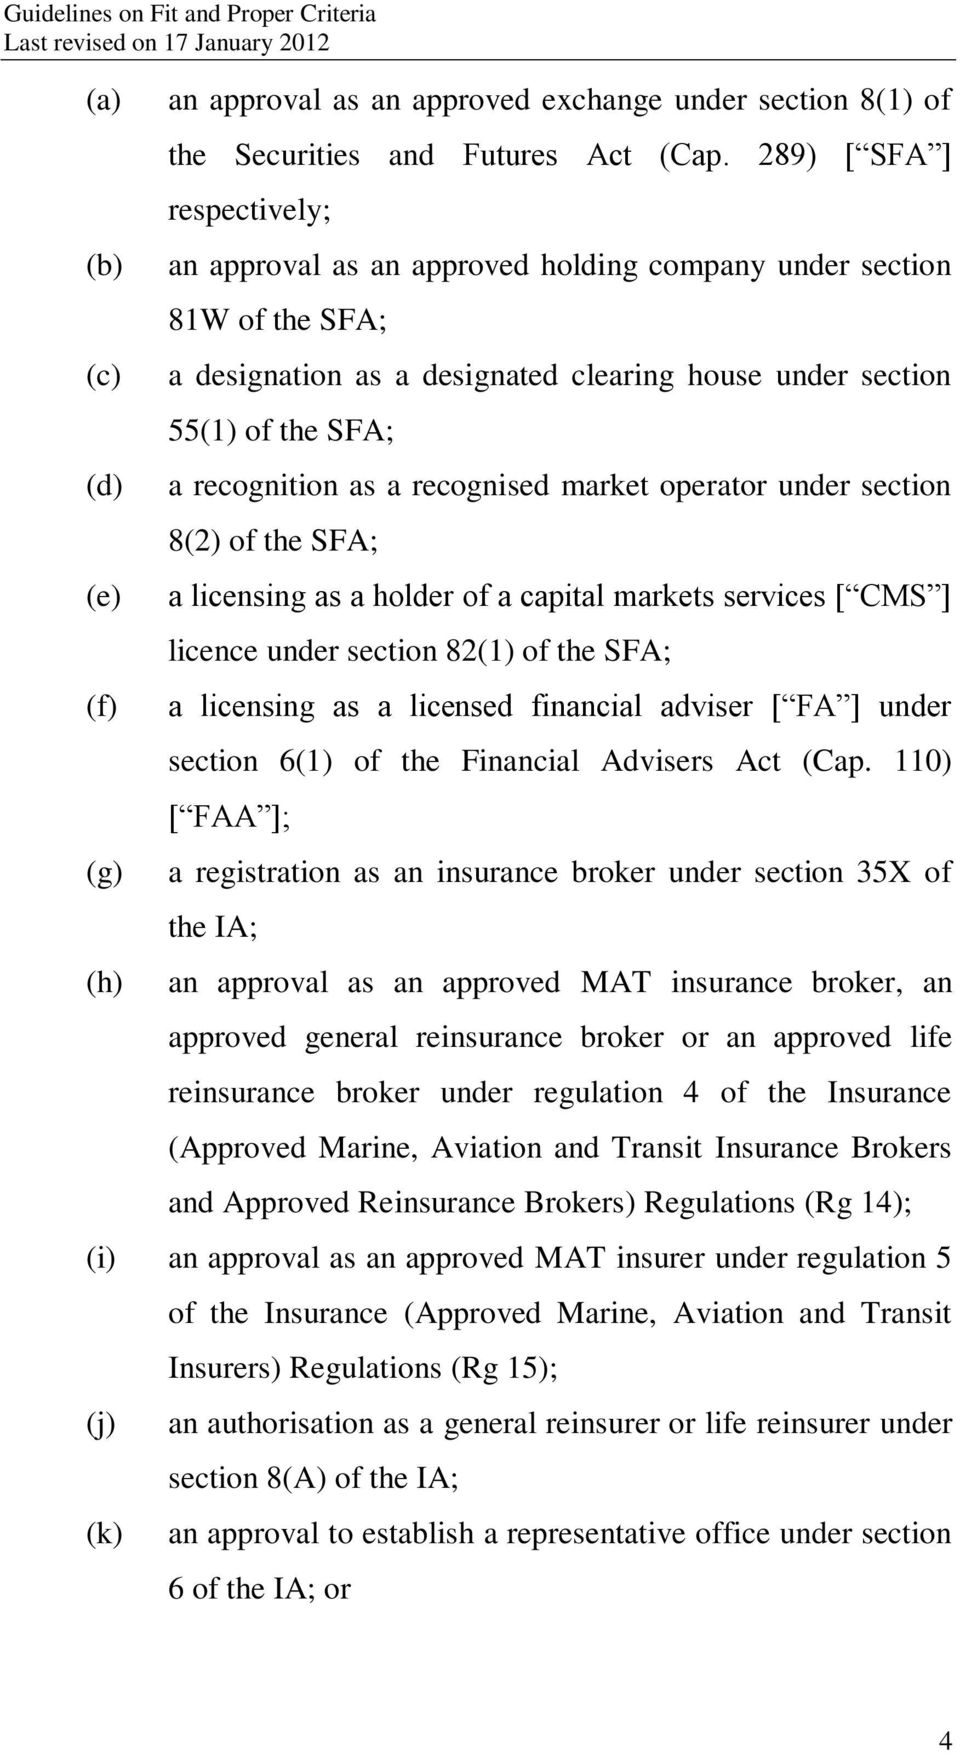 recognised market operator under section 8(2) of the SFA; a licensing as a holder of a capital markets services [ CMS ] licence under section 82(1) of the SFA; a licensing as a licensed financial